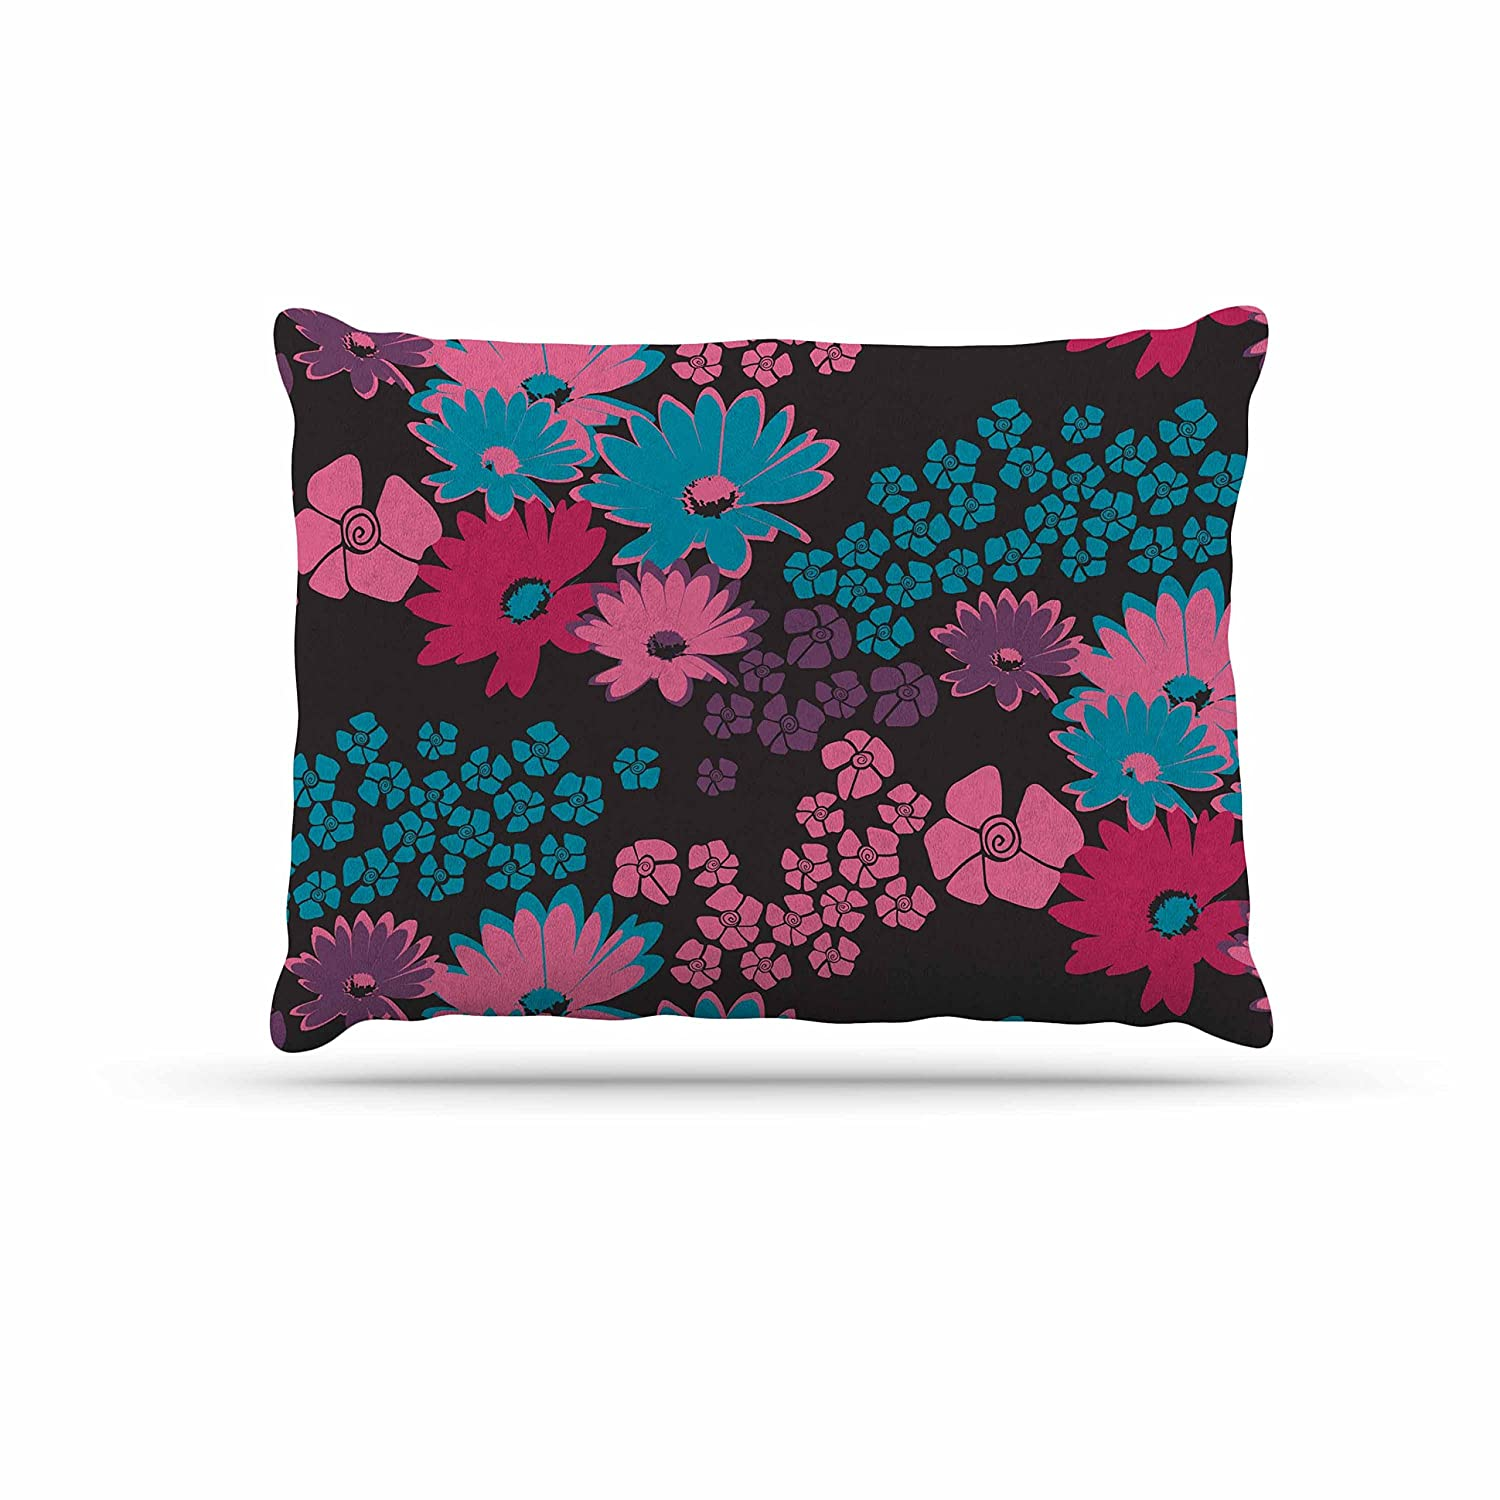 KESS InHouse Zara Martina Mansen Berry color Bouquet Teal Pink Dog Bed, 30  x 40